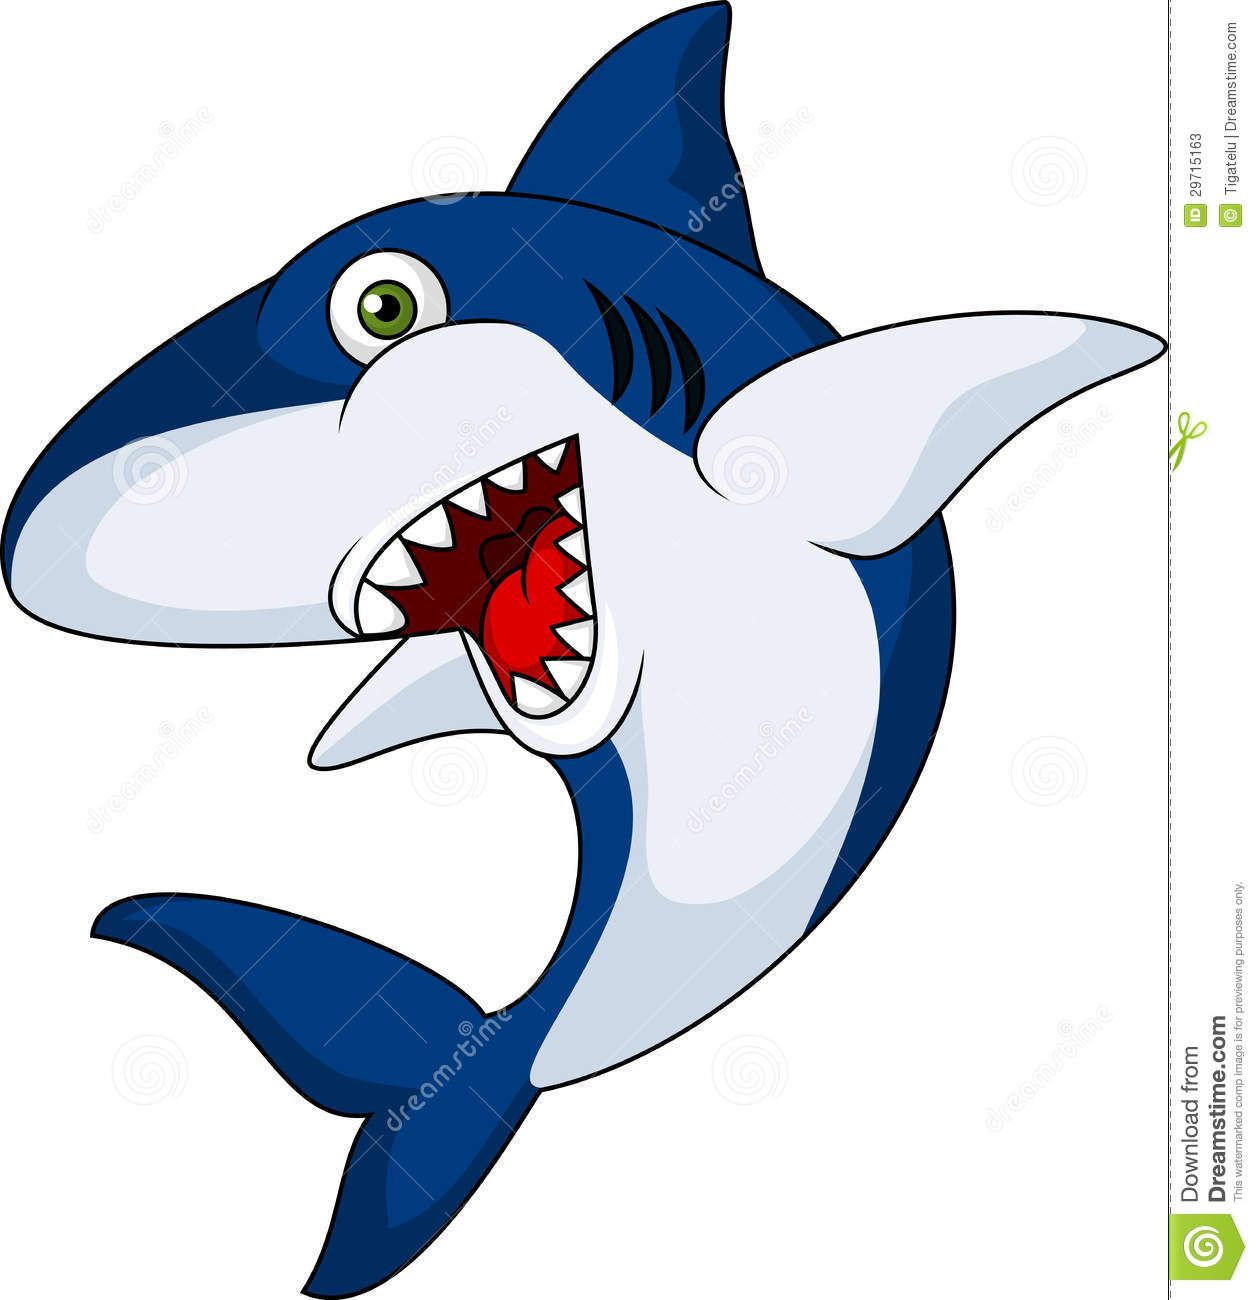 cartoon shark images | Cartoon Sharks Clipart Shark ...